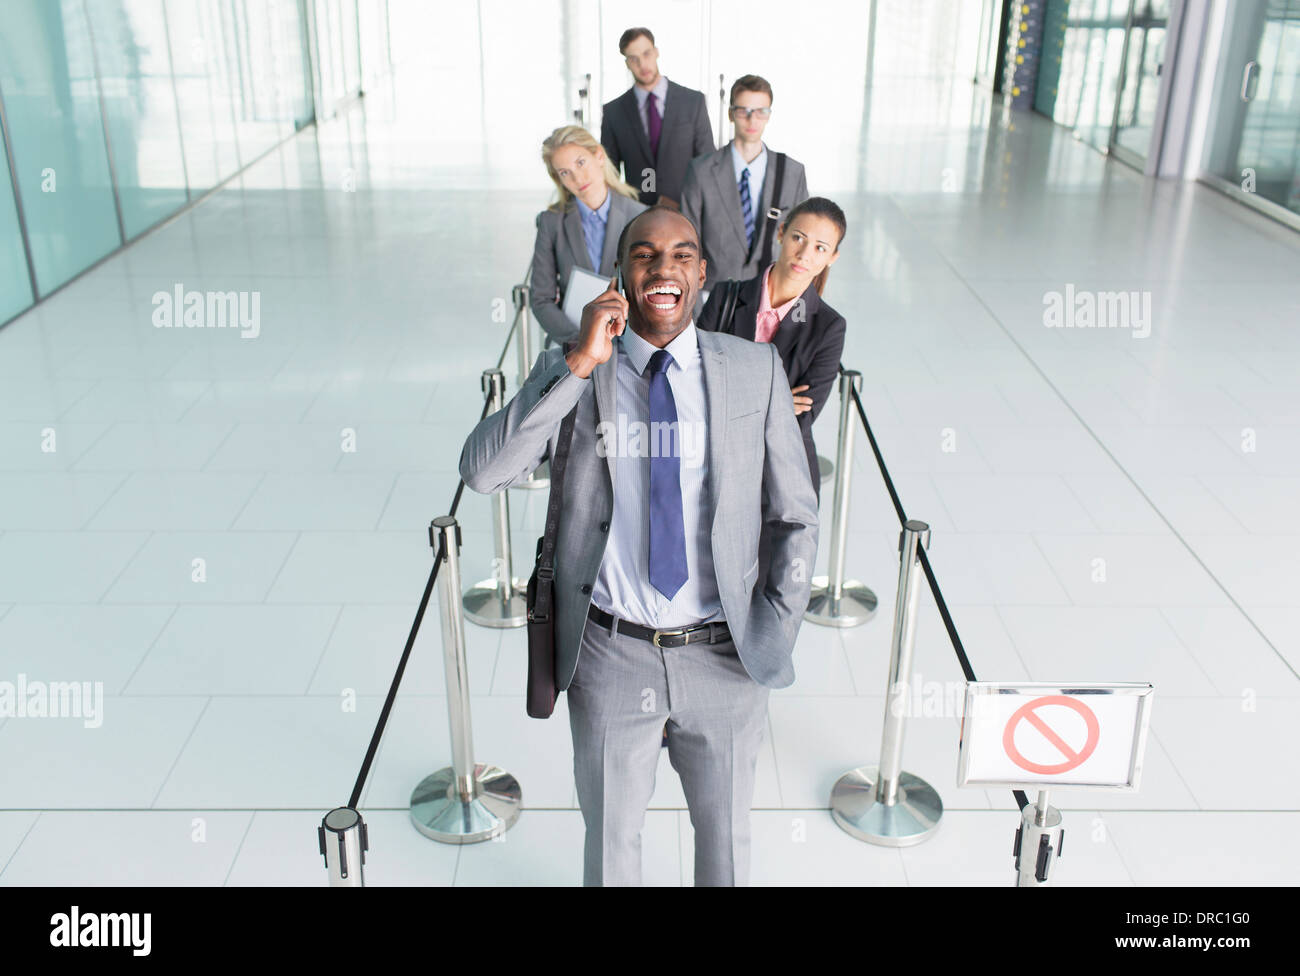 Businessman talking on cell phone in line - Stock Image